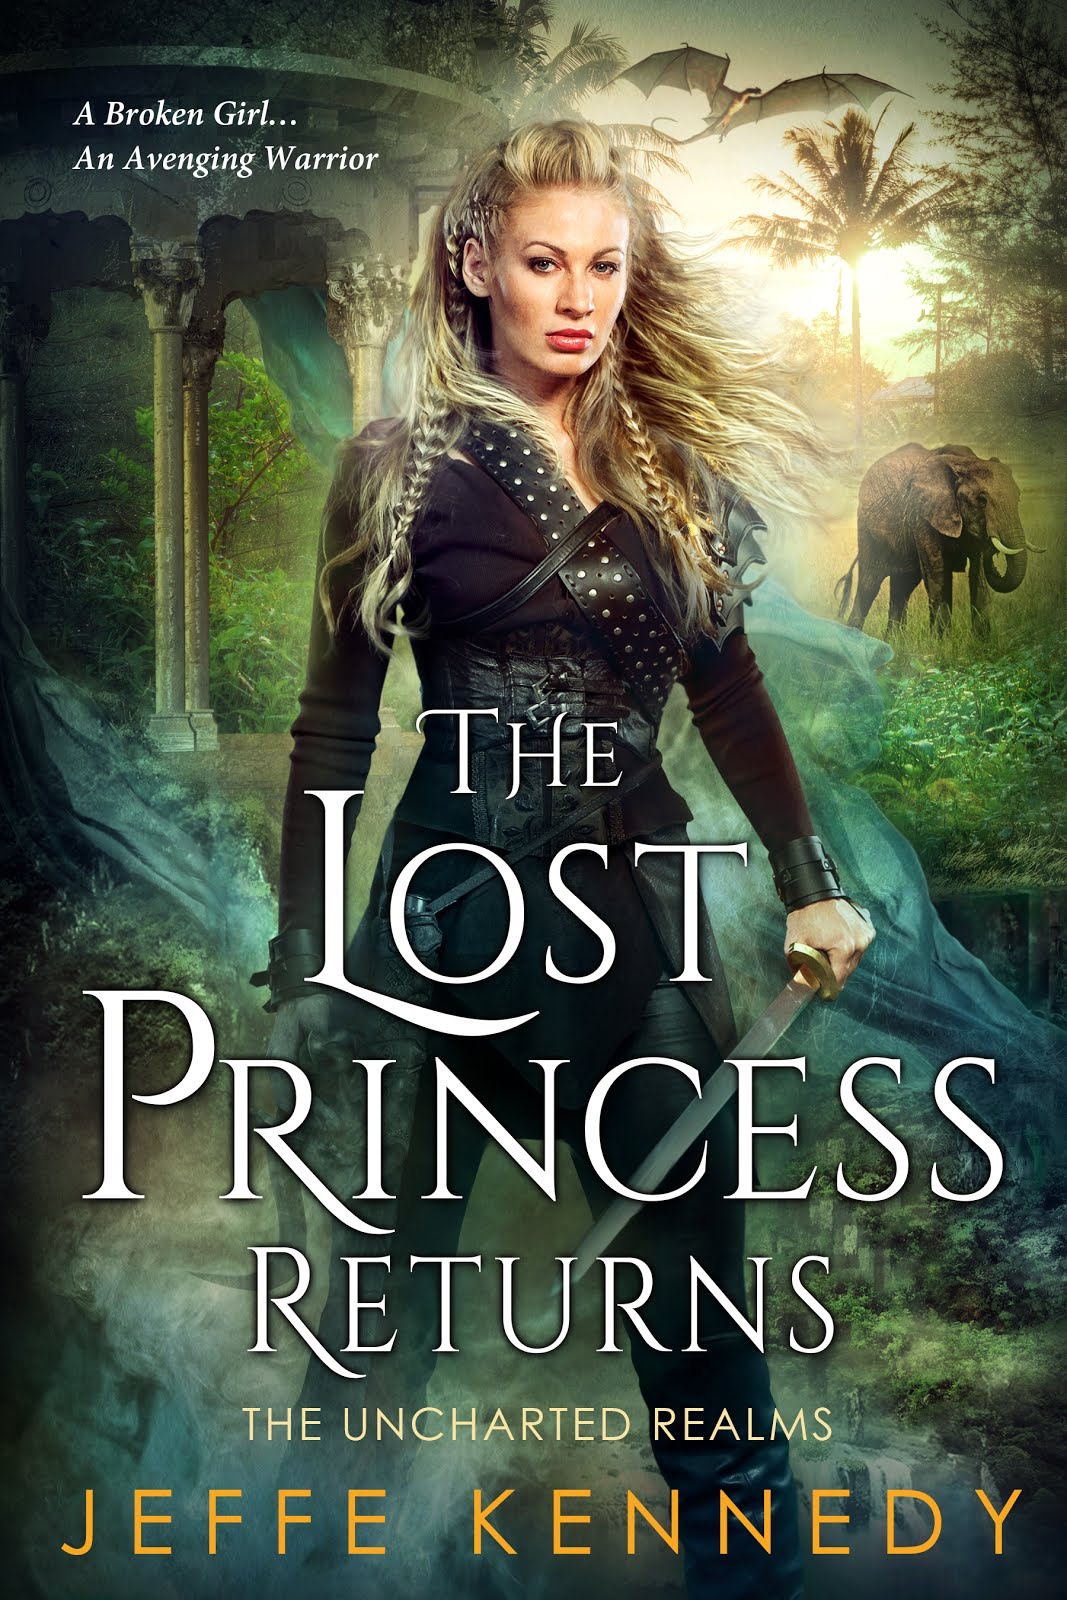 The Lost Princess Returns (The Uncharted Realms)